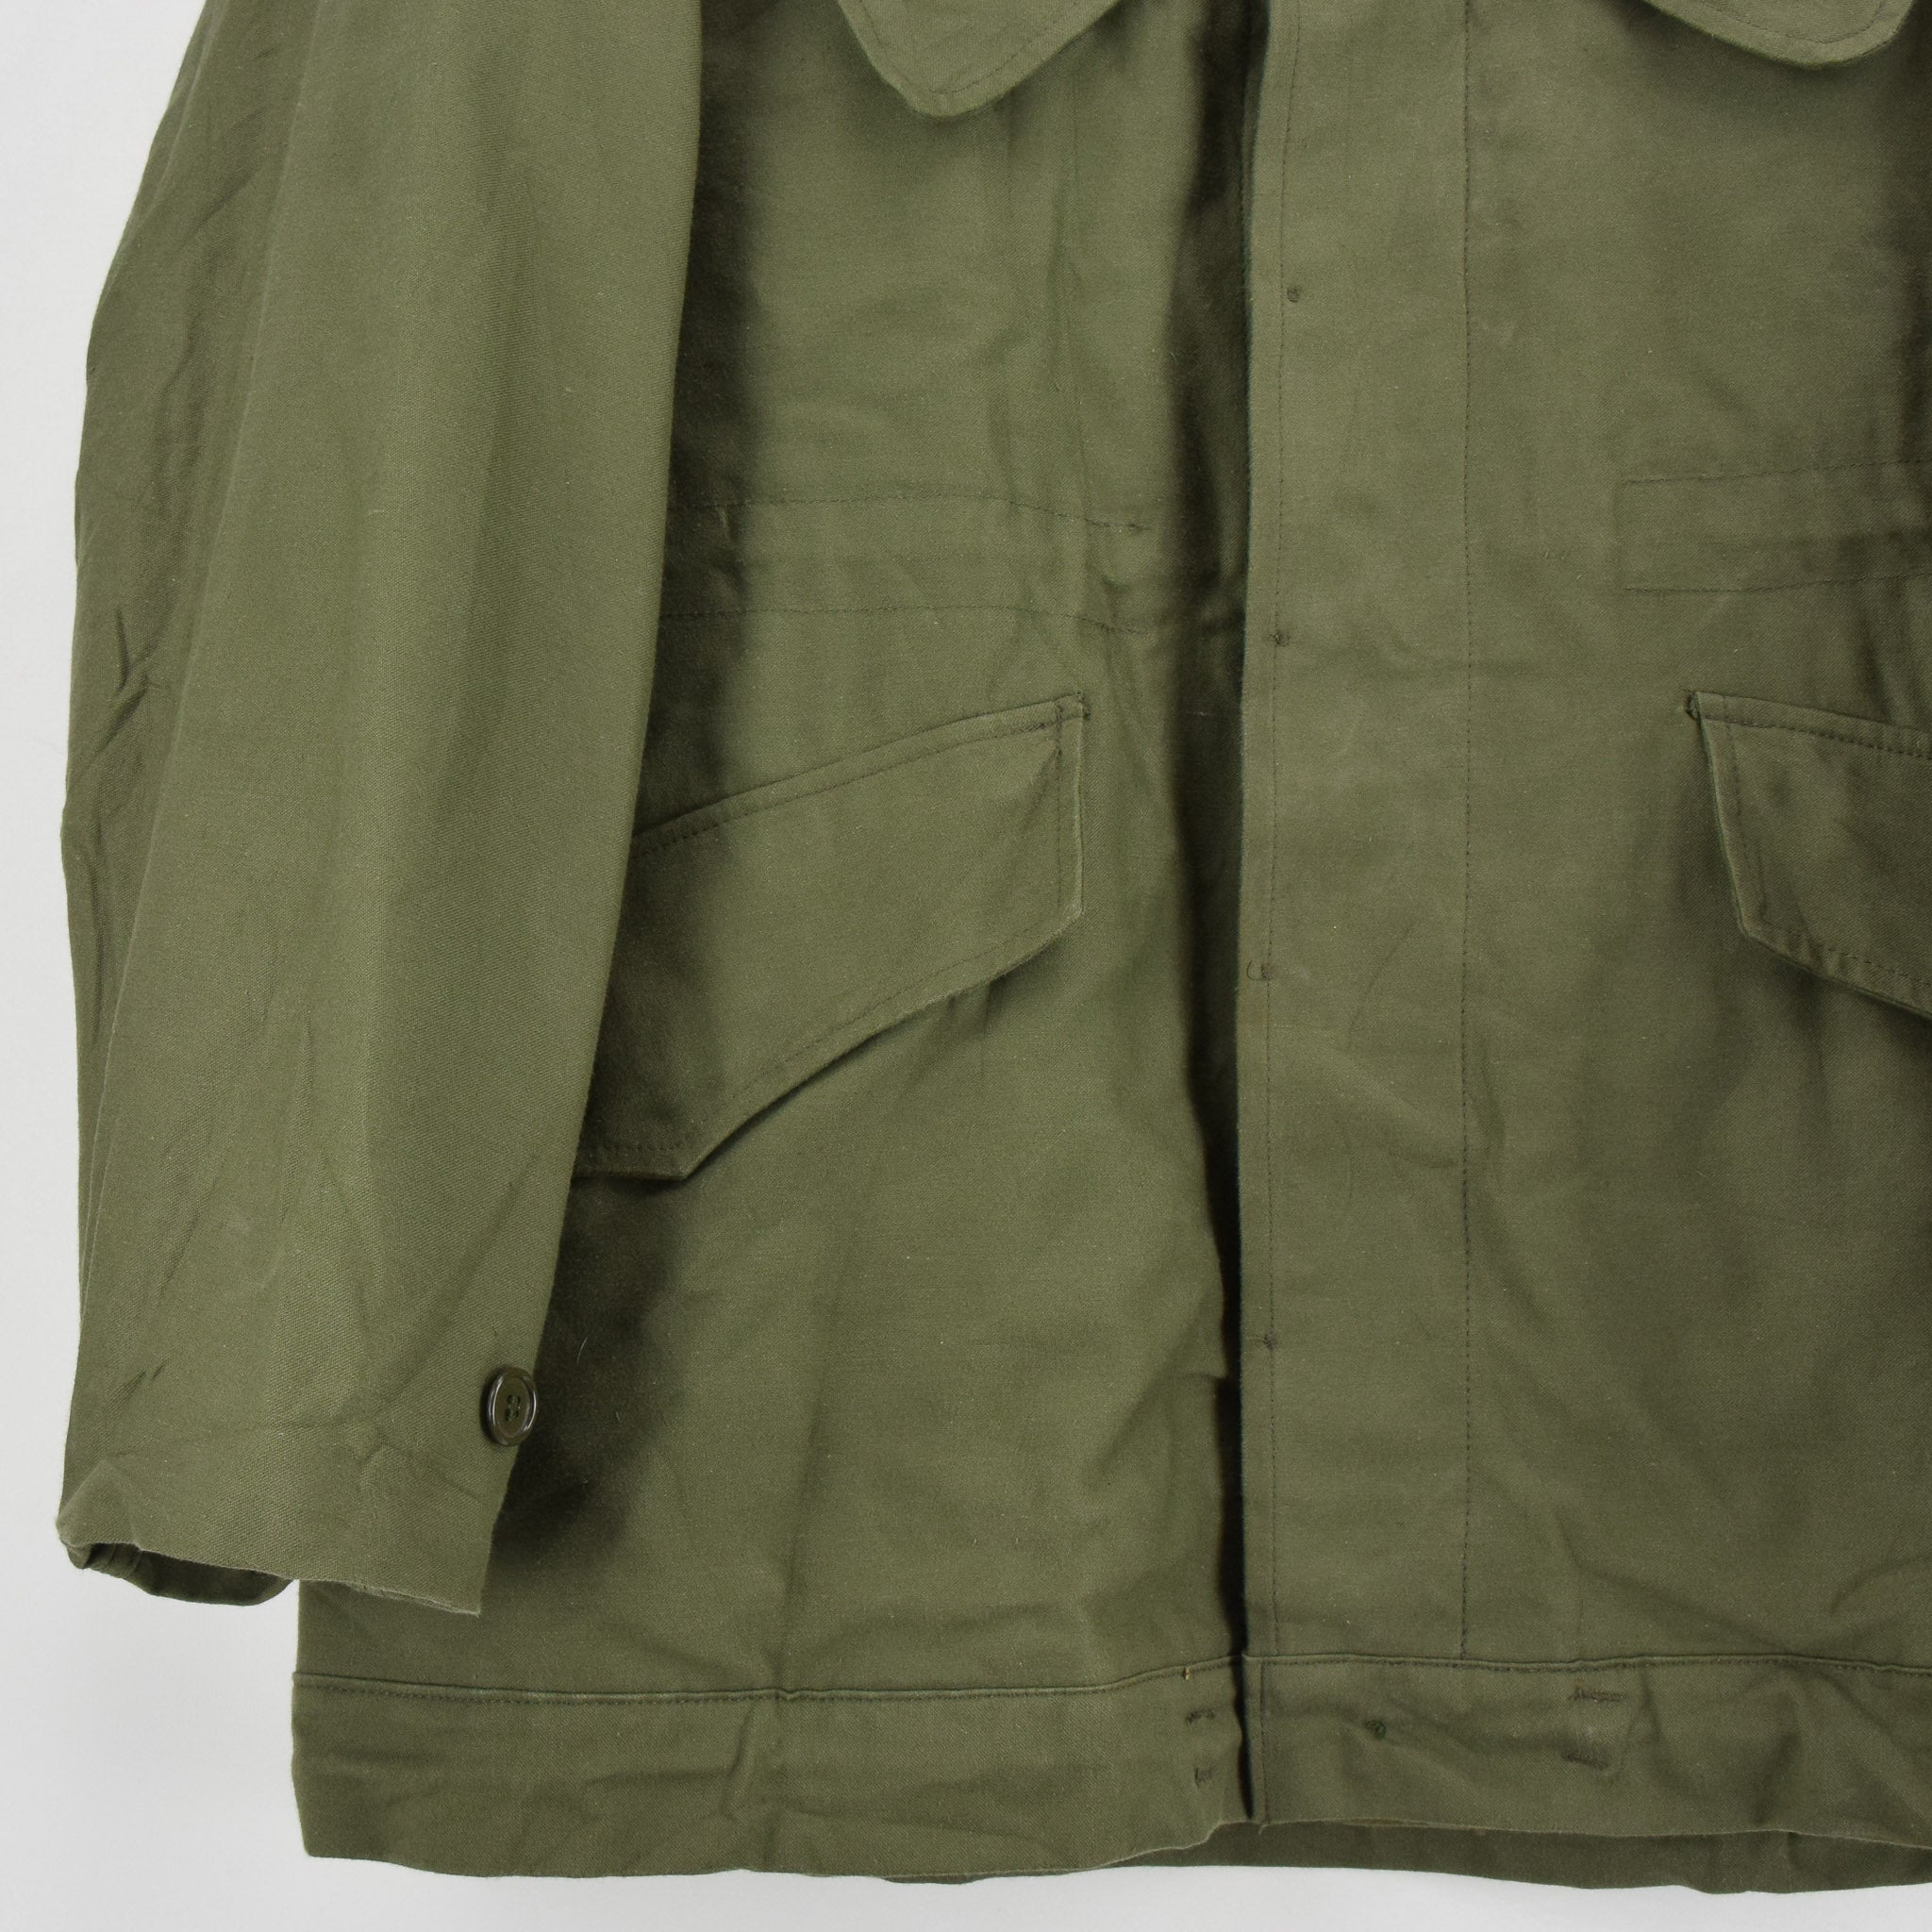 Vintage 80s Seyntex Green Dutch Army Cotton Military Field Jacket with Liner M front hem